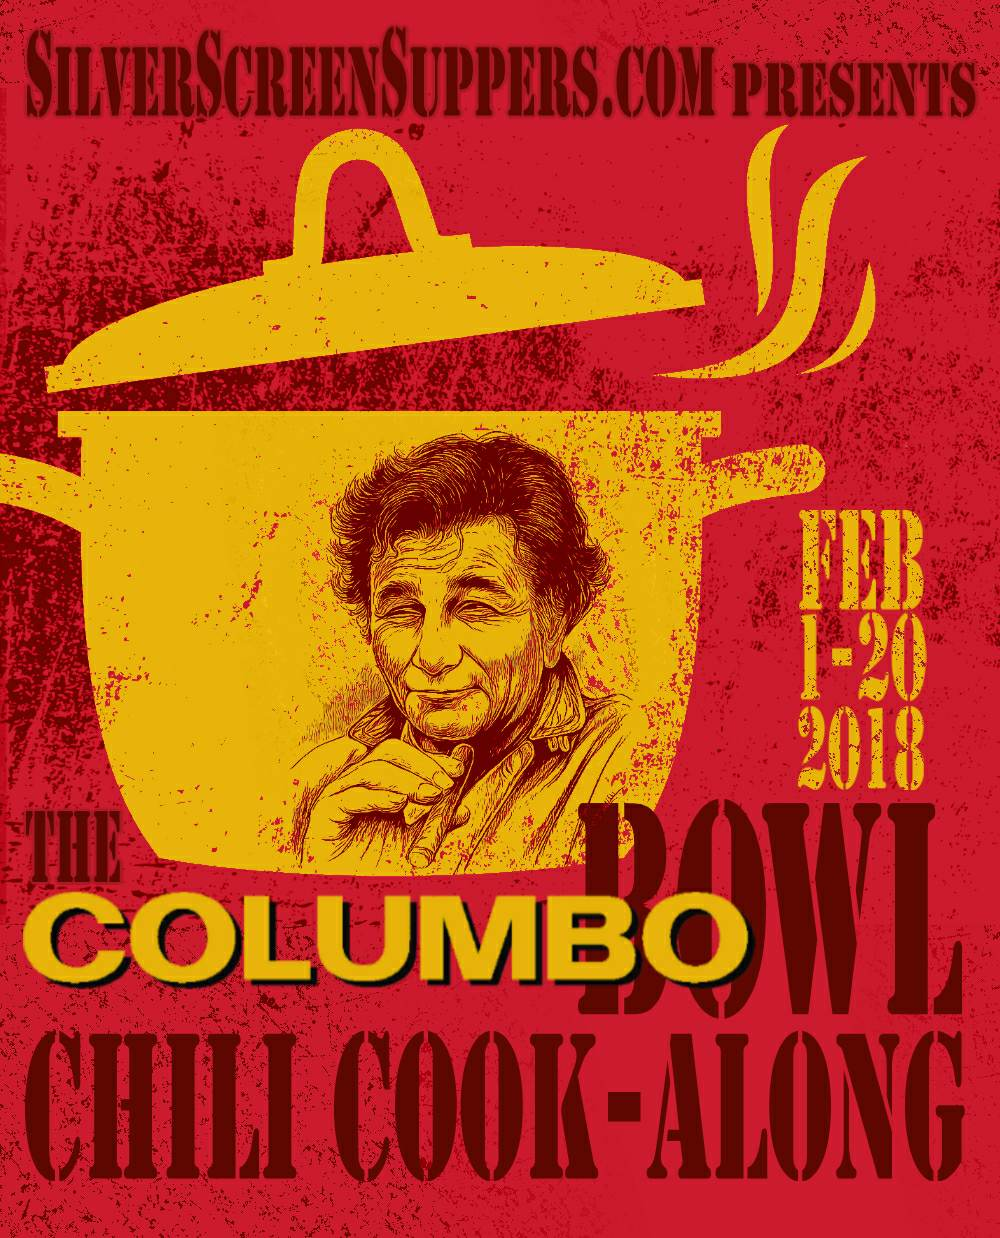 The Columbo Bowl Chili Cook-along